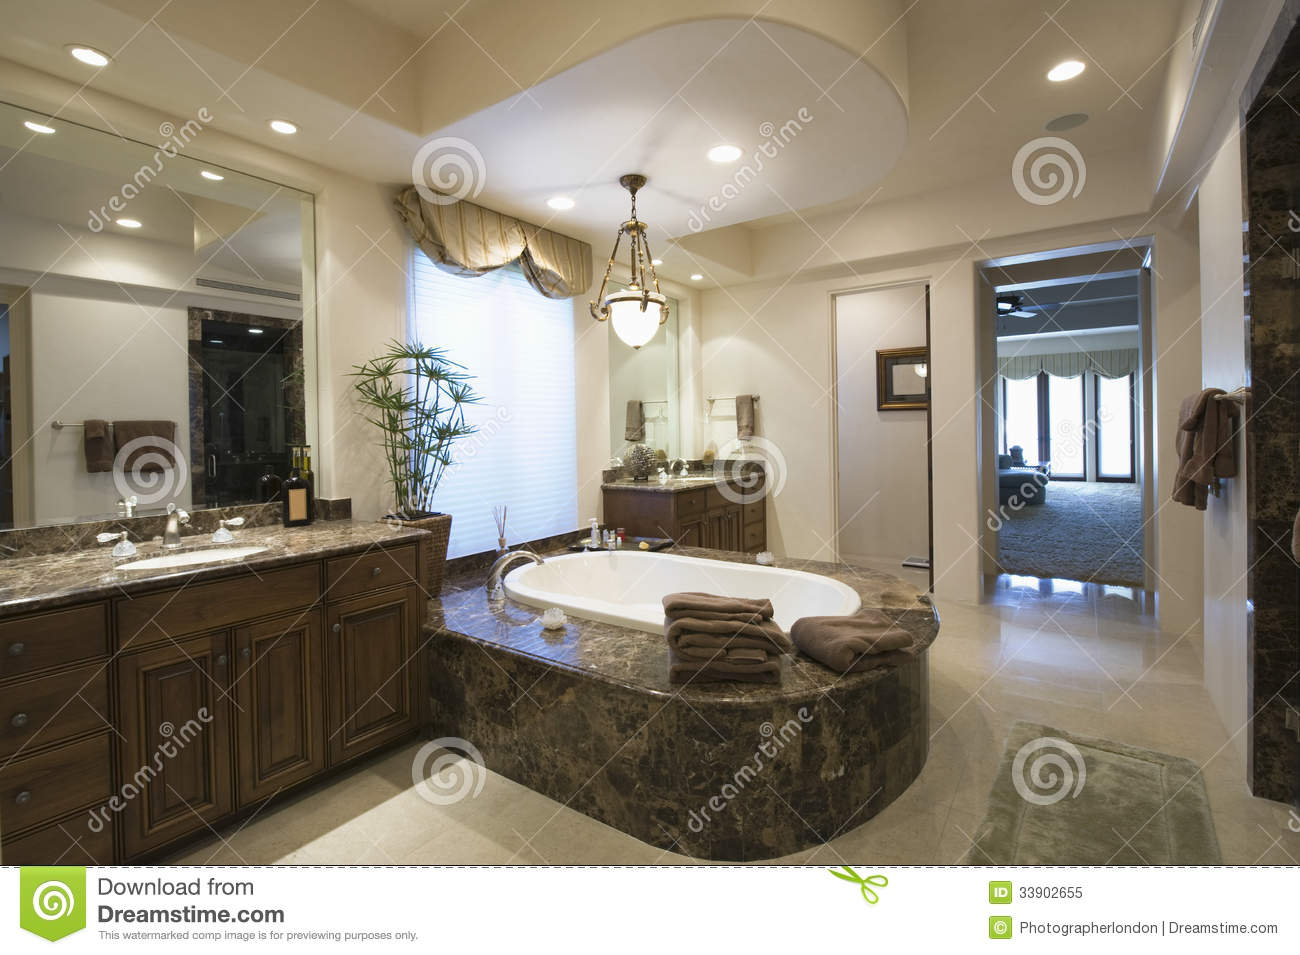 Genial Modern And Spacious Bathroom